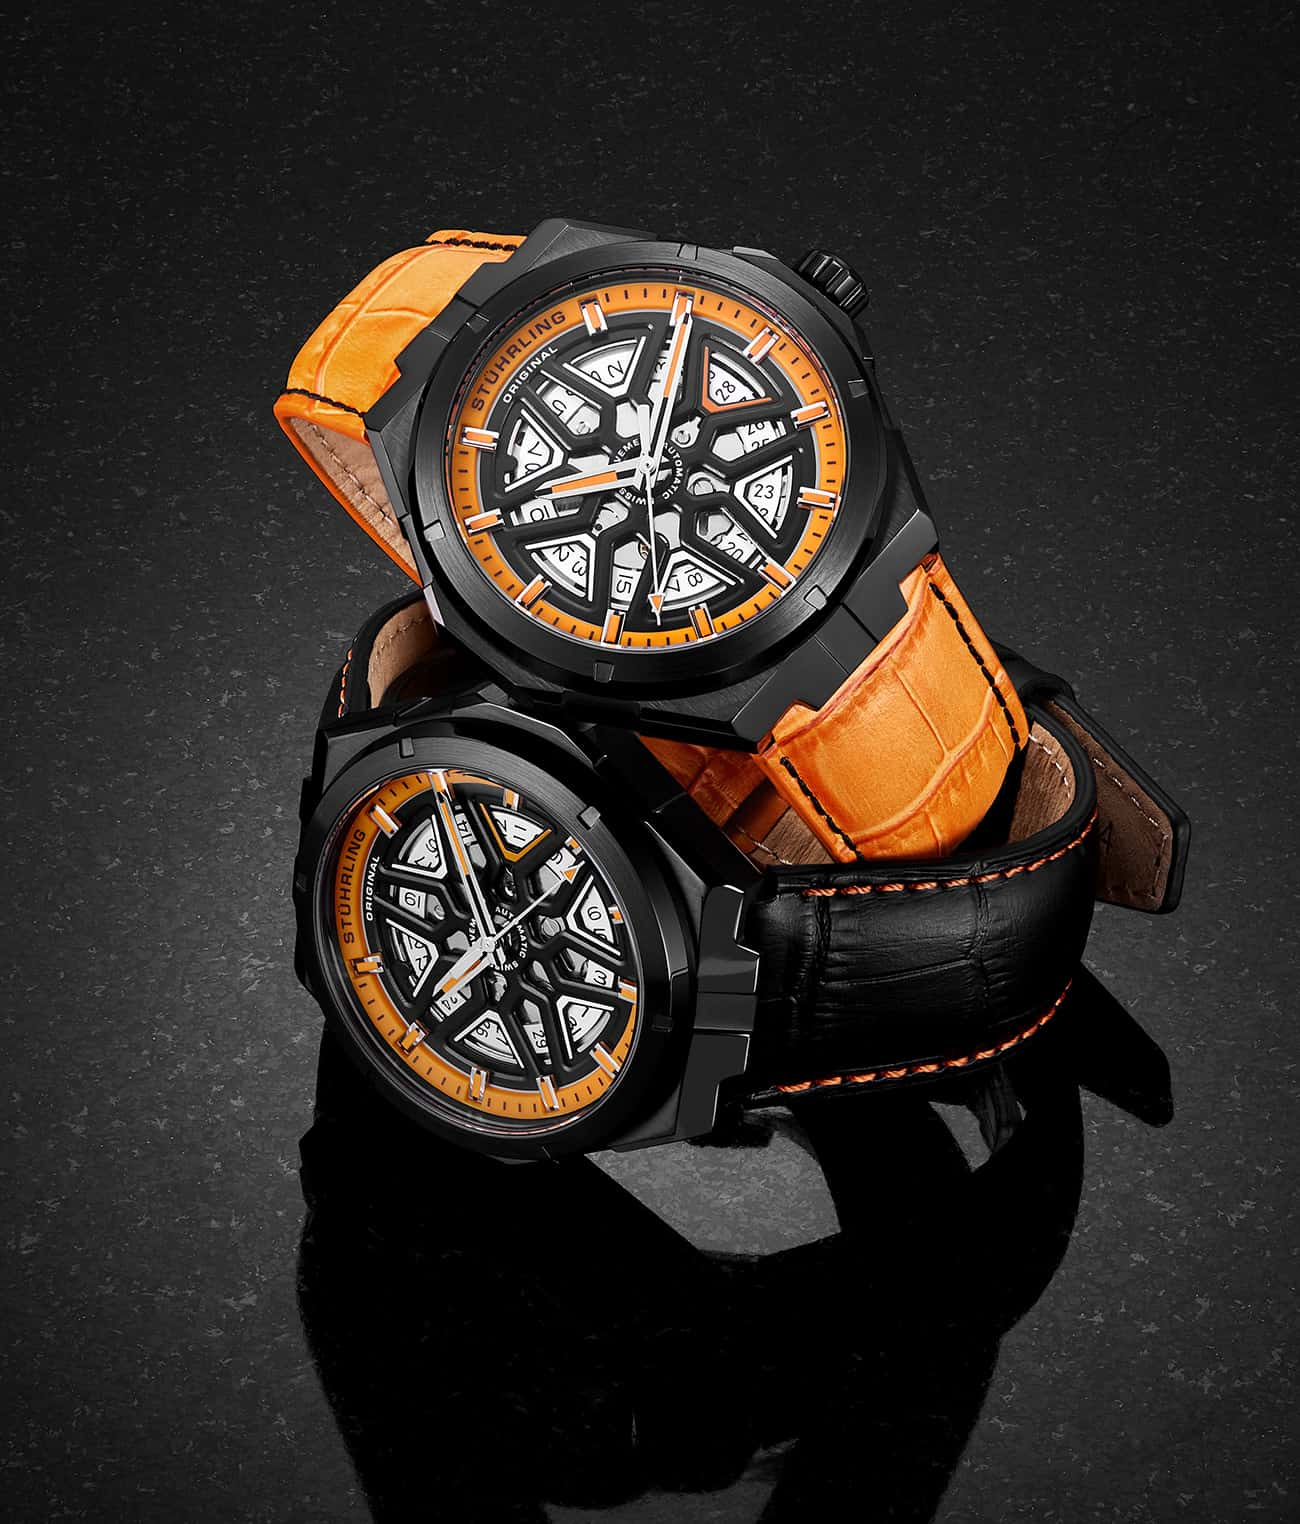 Orange Dial / Black Case / Orange Band